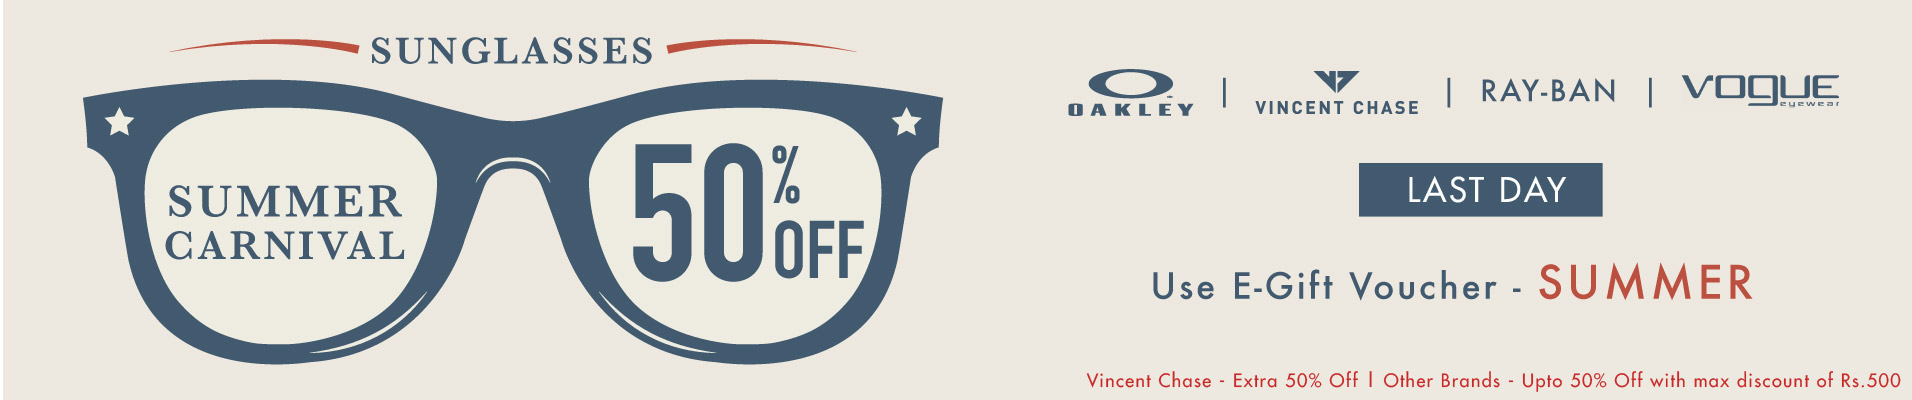 Get Upto 50% OFF + Extra 30% OFF + Extra 20% Cash back on Sunglasses @ Lenskart – Others